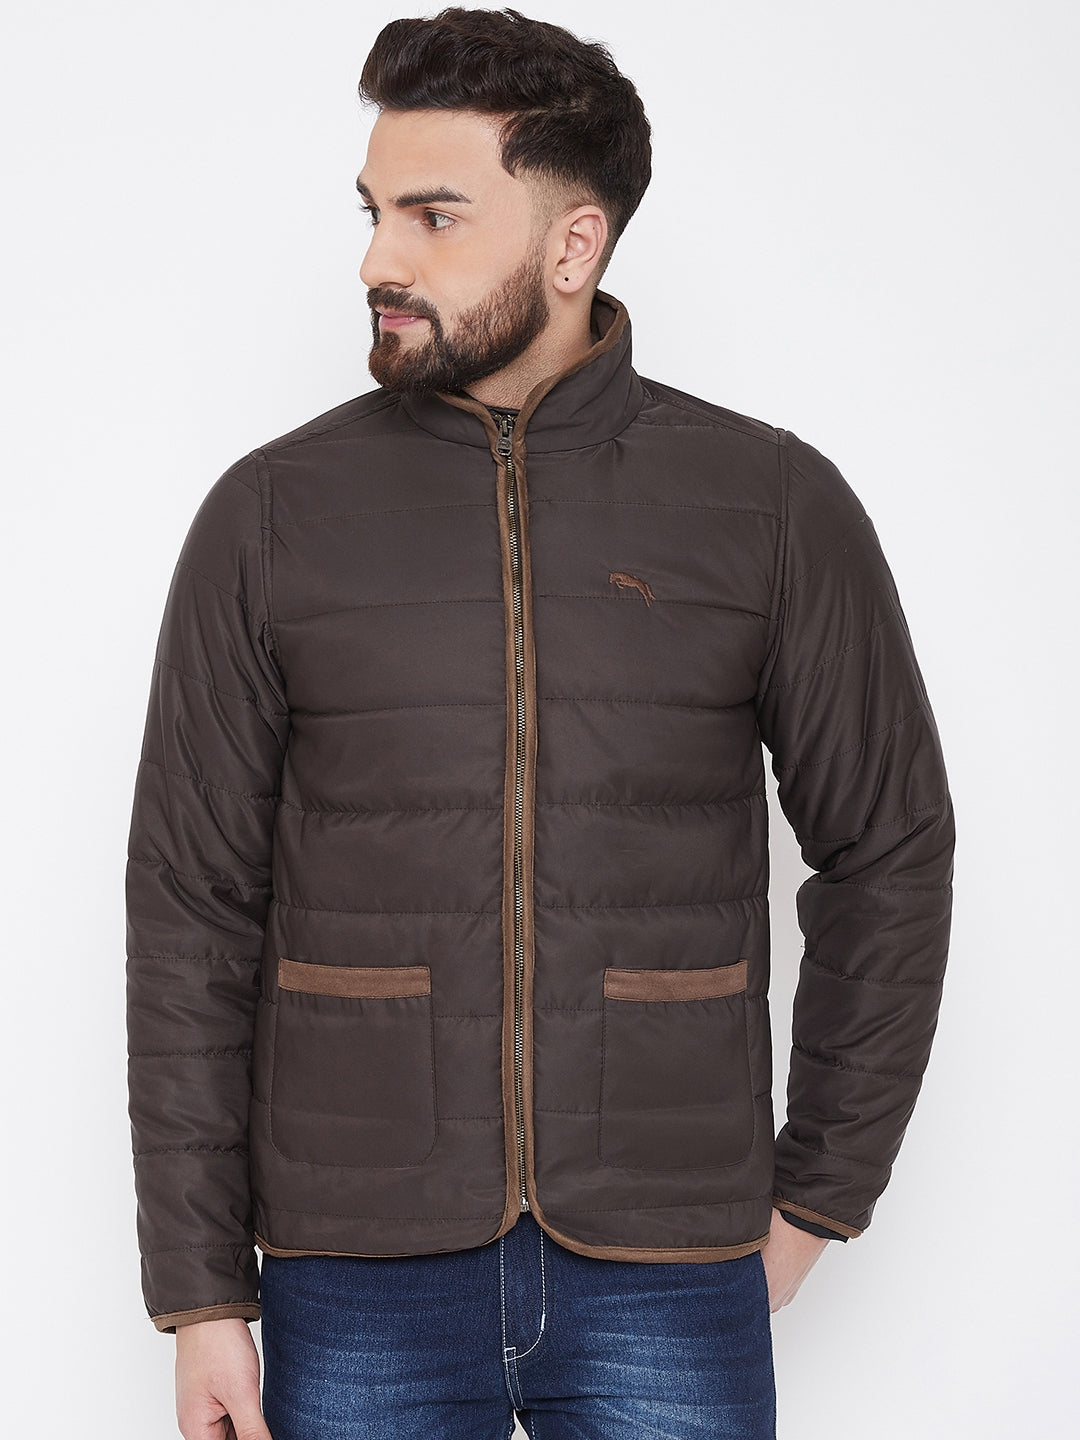 JUMP USA Men Coffee Solid Casual Quilted Jacket - JUMP USA